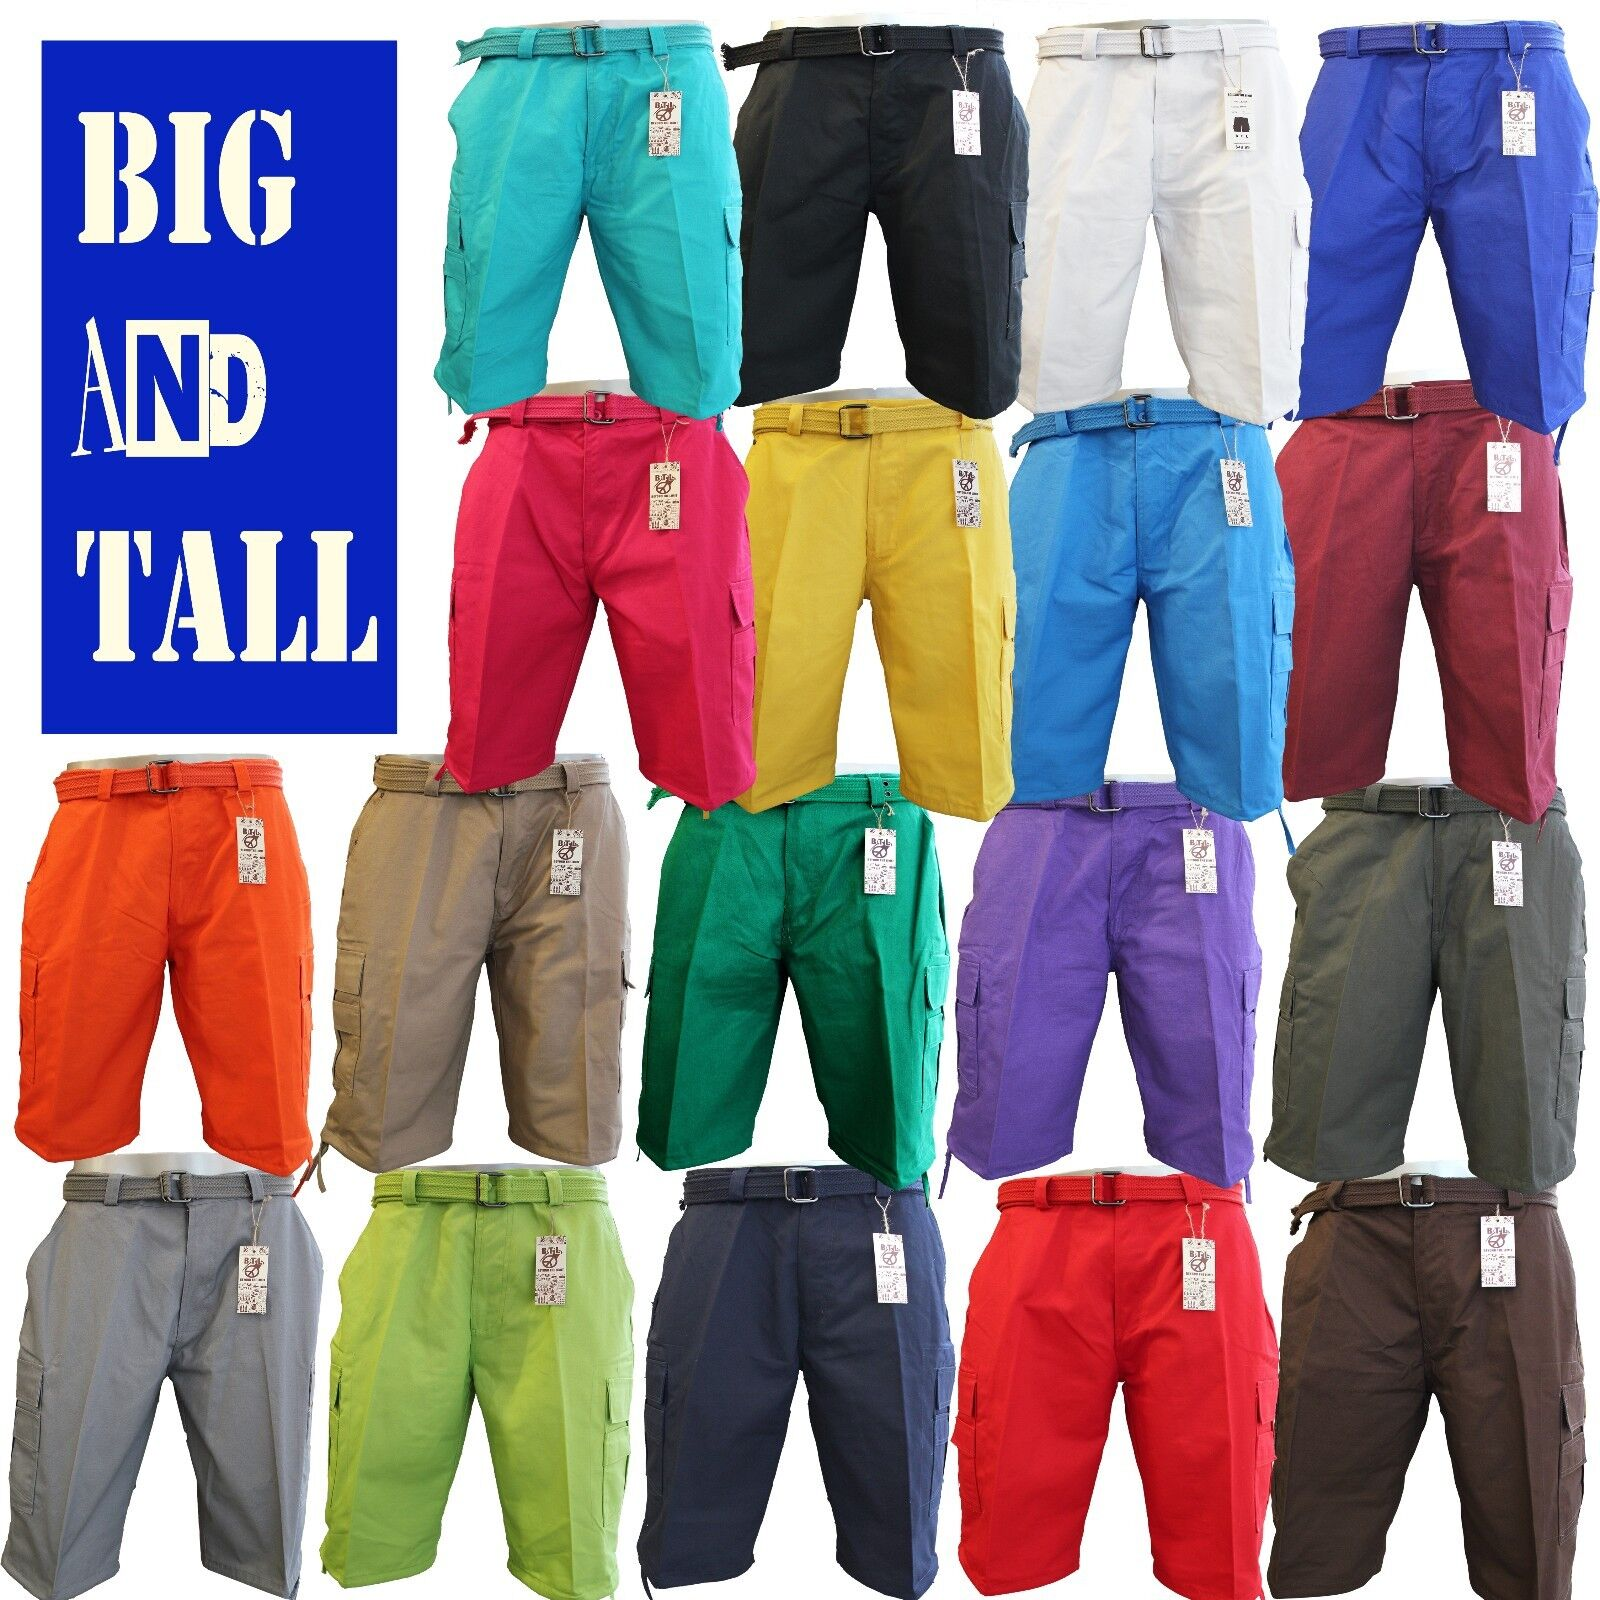 Men Big and Tall BTL Cargo Shorts With Belt Cotton Twill 18